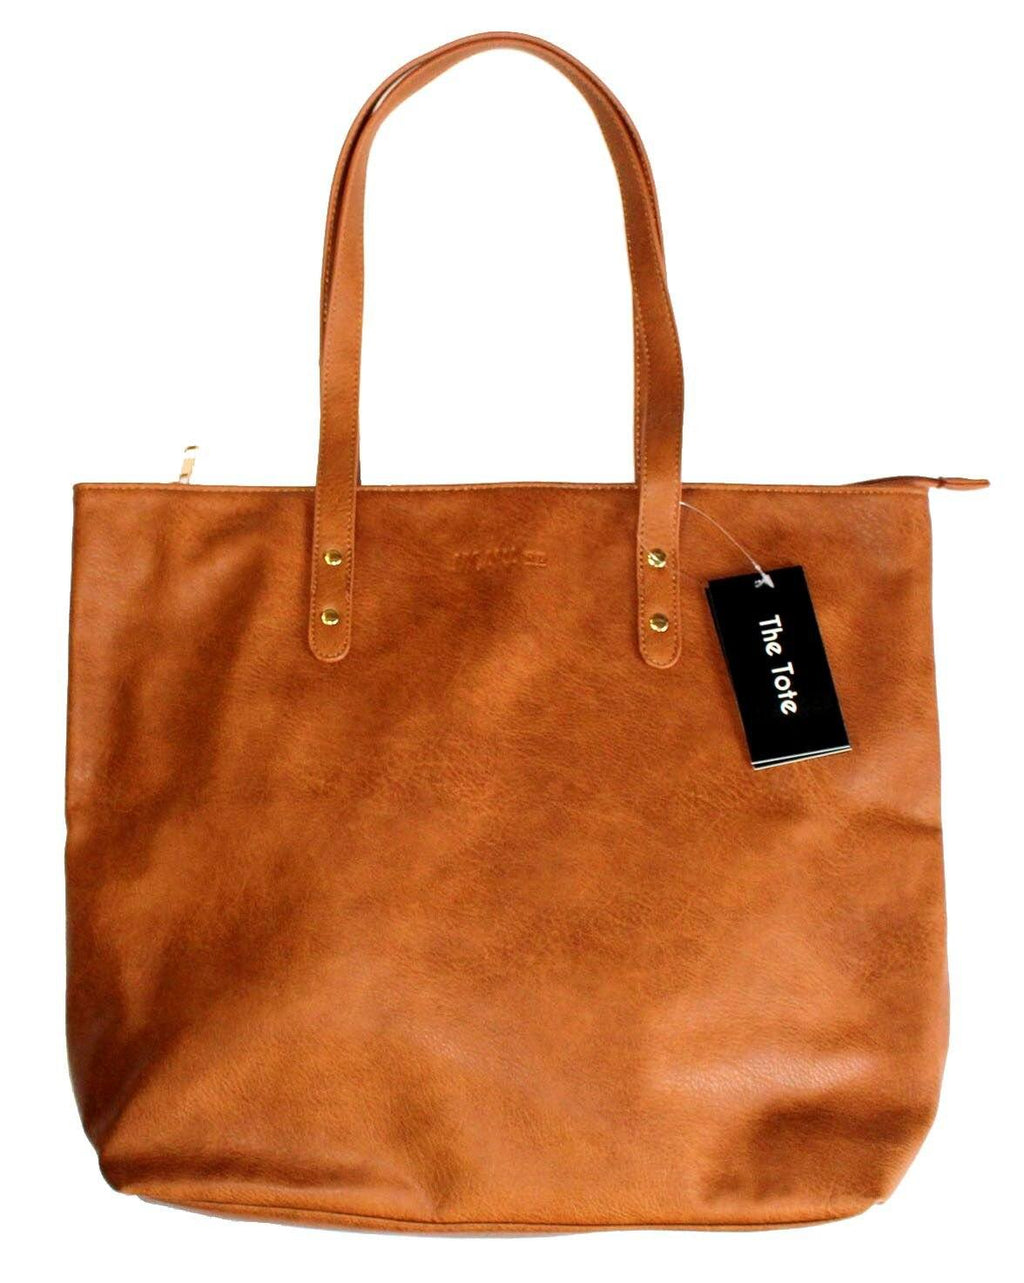 Moana Road Khandallah Tote Bag